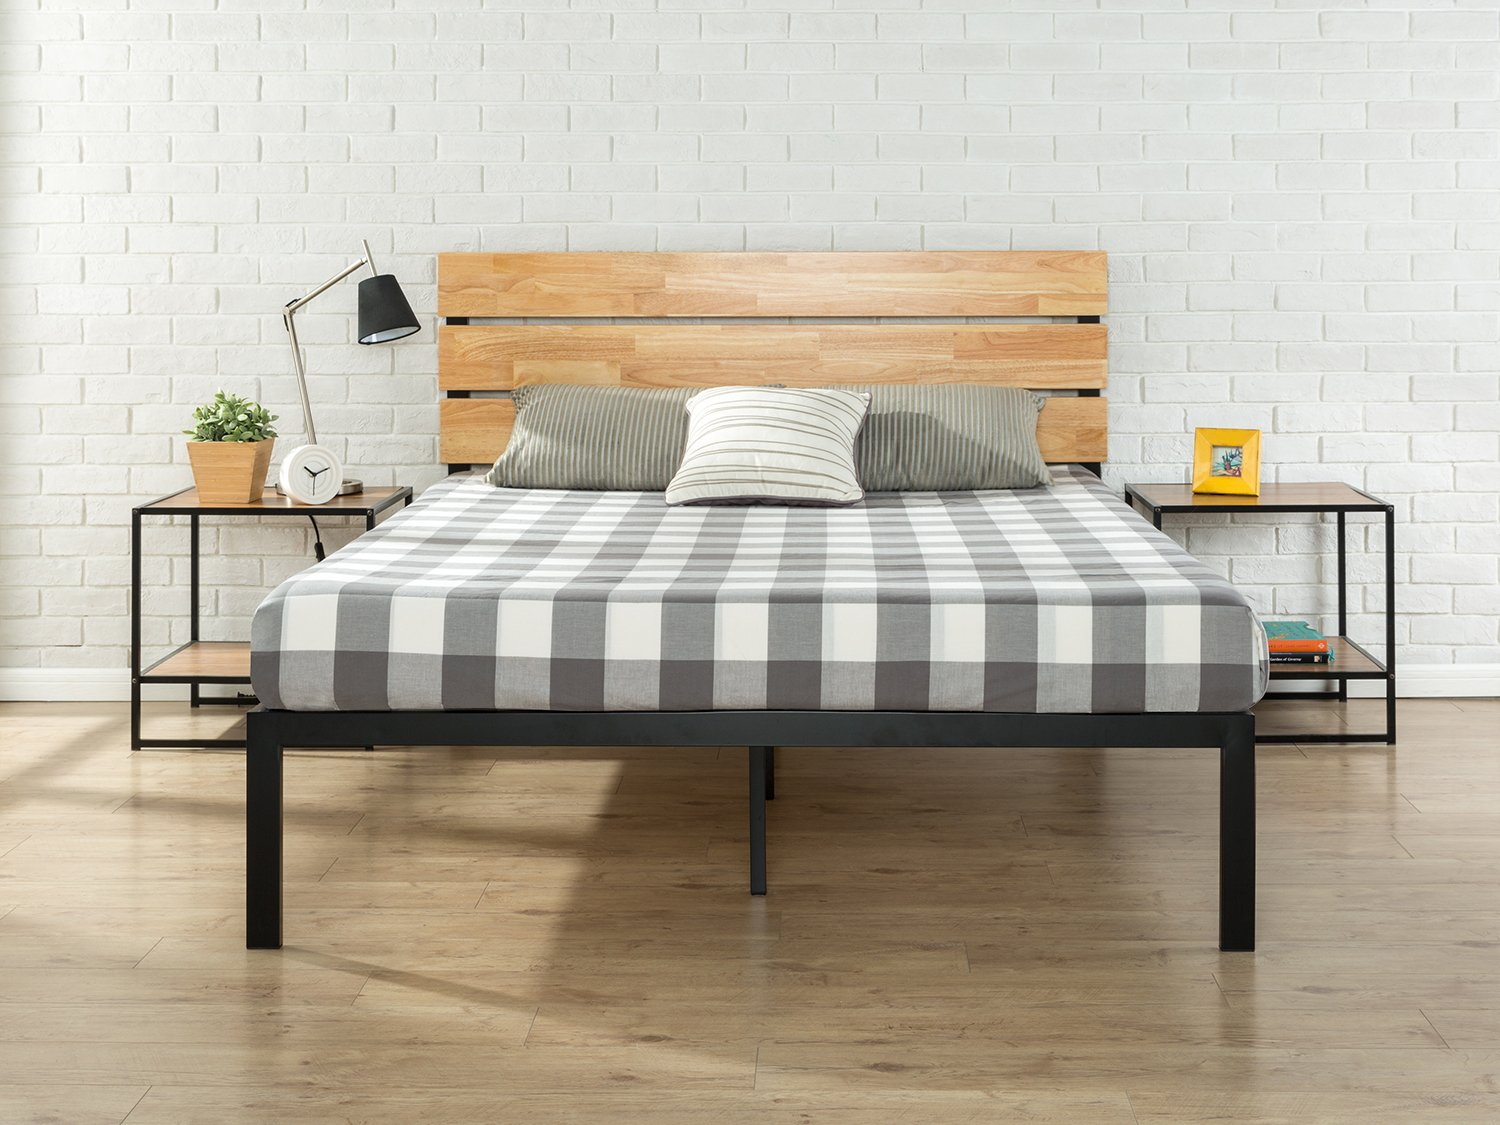 Zinus Paul Metal and Wood Platform Bed with Wood Slat Support, Full by Zinus